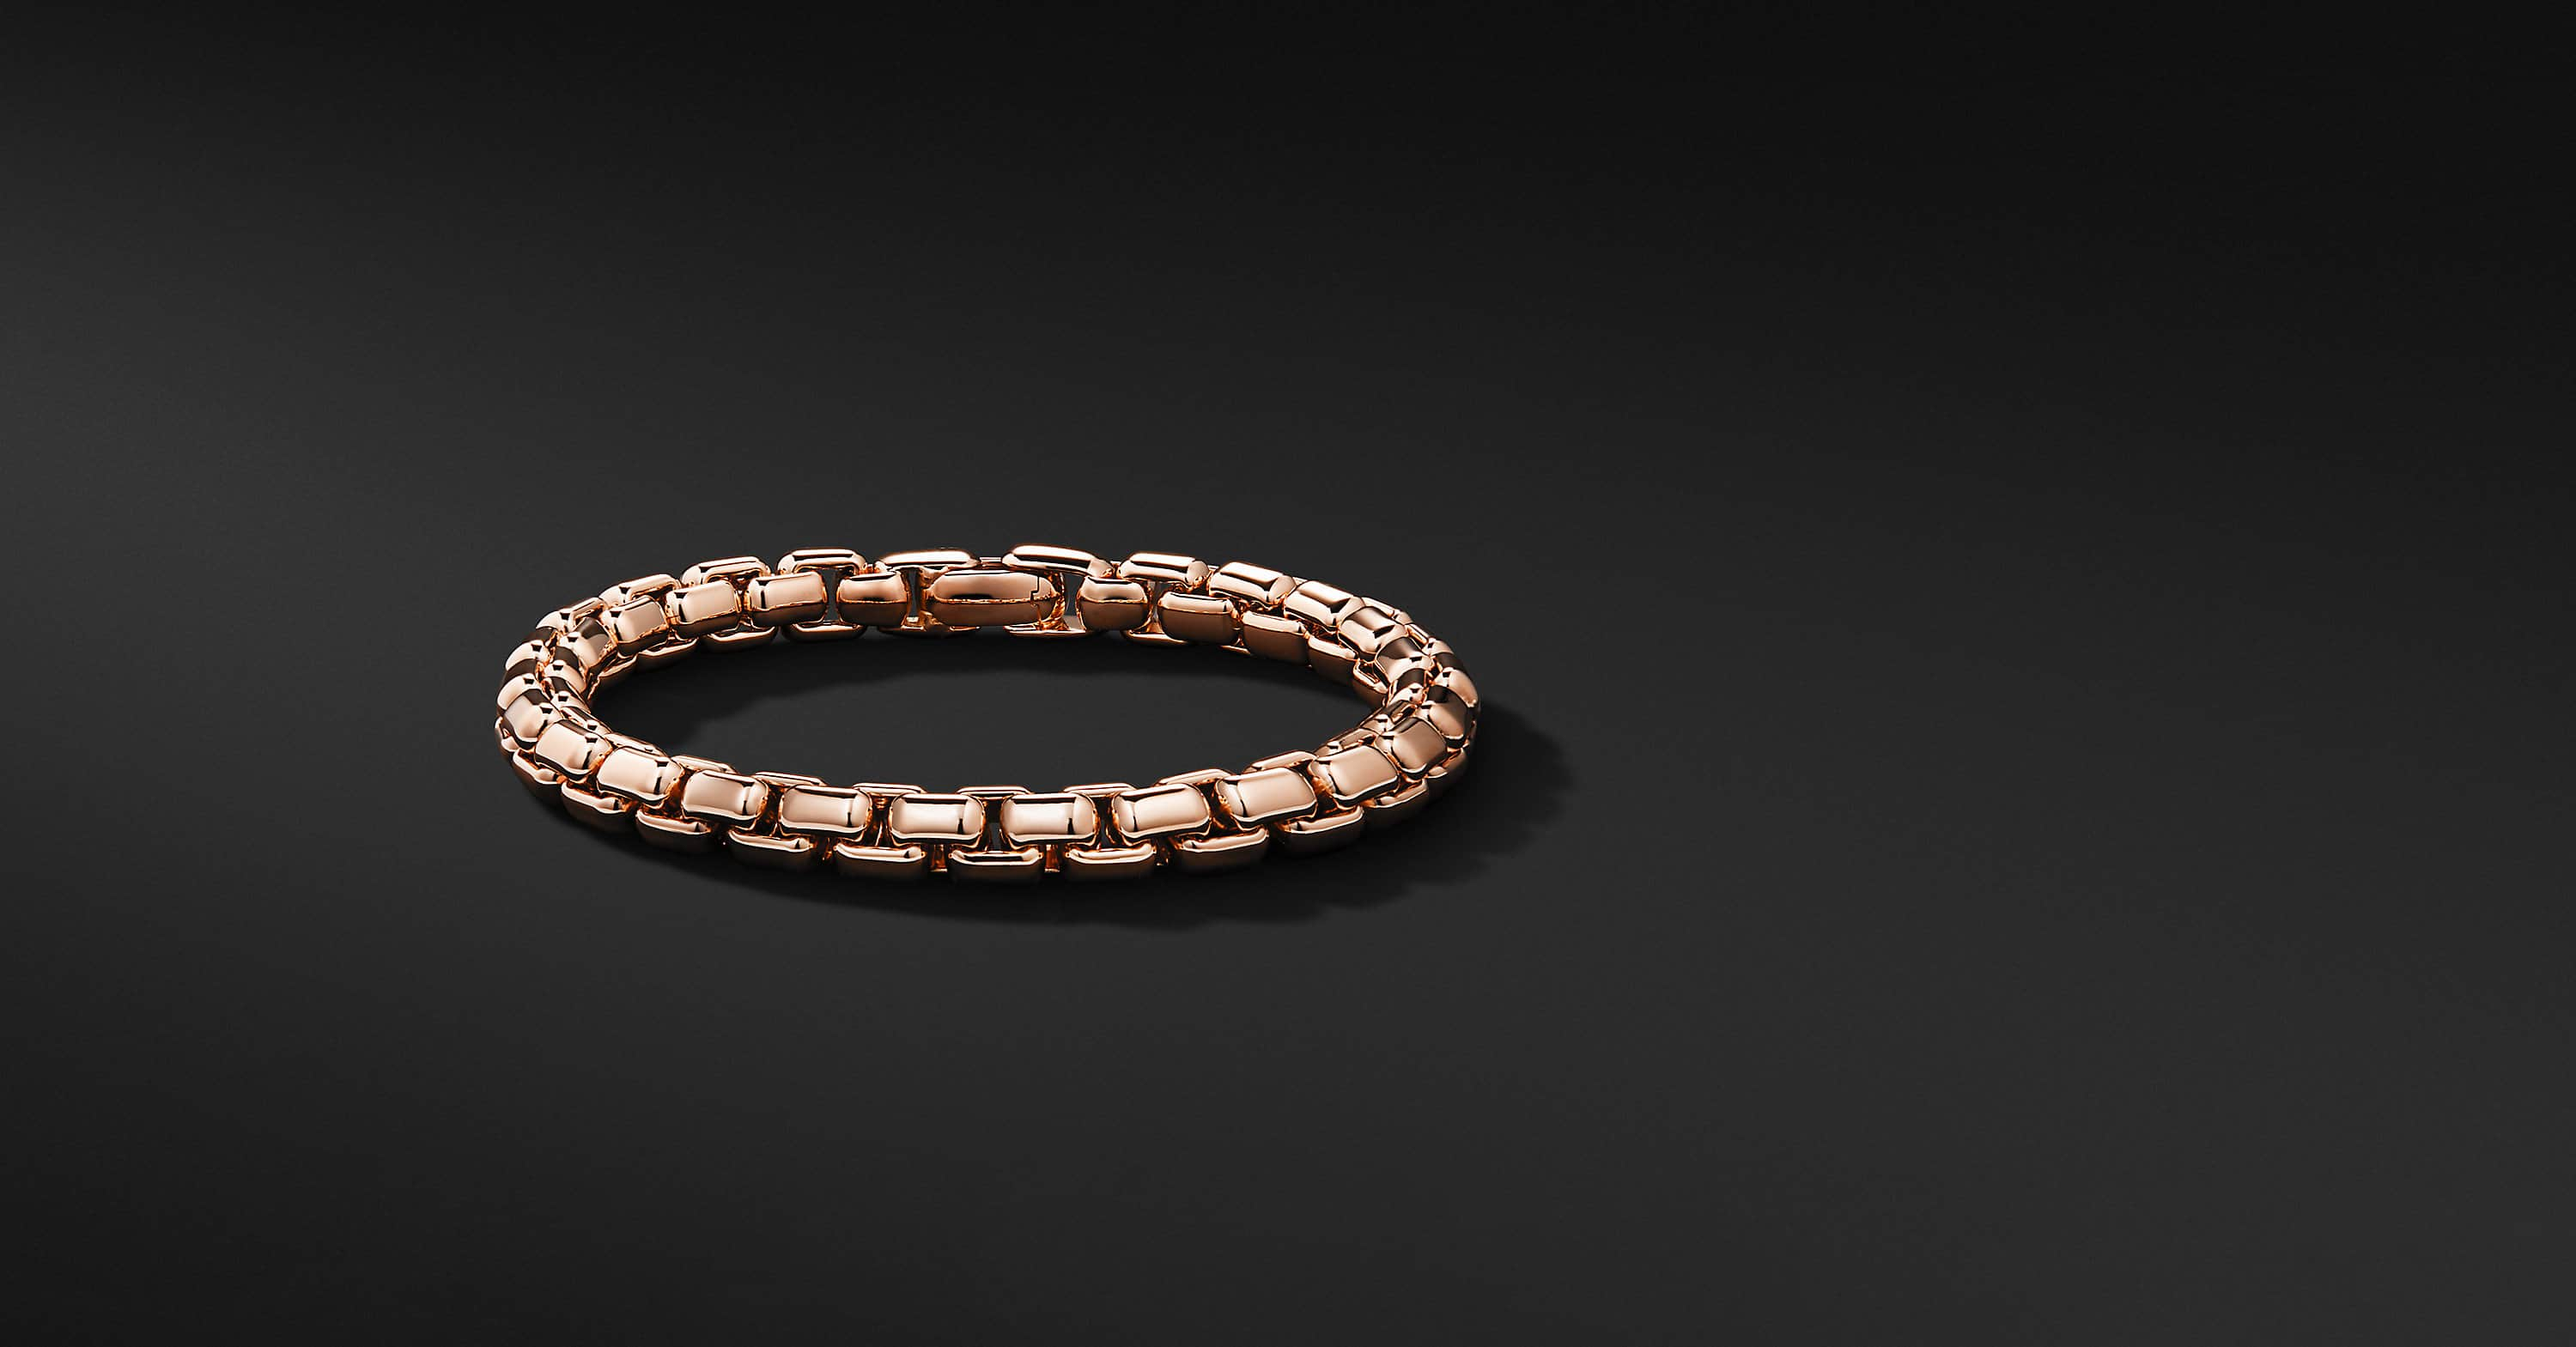 Box Chain Bracelet in 18K Rose Gold, 7.5mm